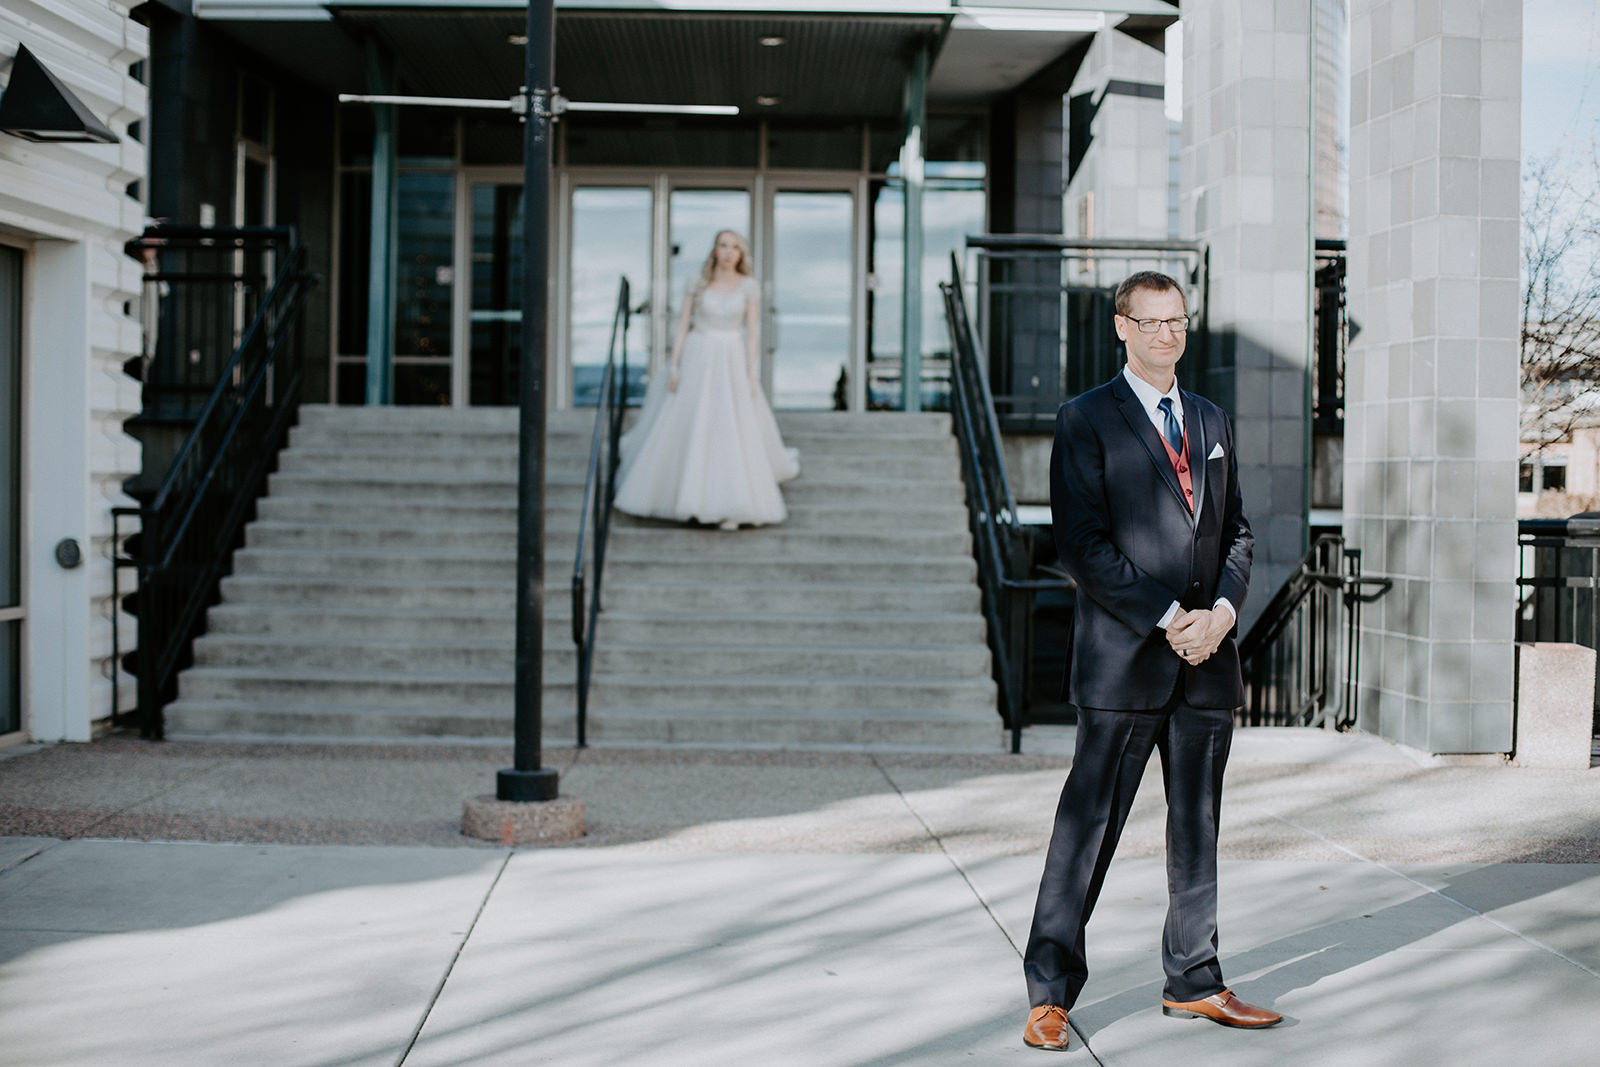 Dad stands in foreground waiting to see his soon to be married daughter walking down steps behind